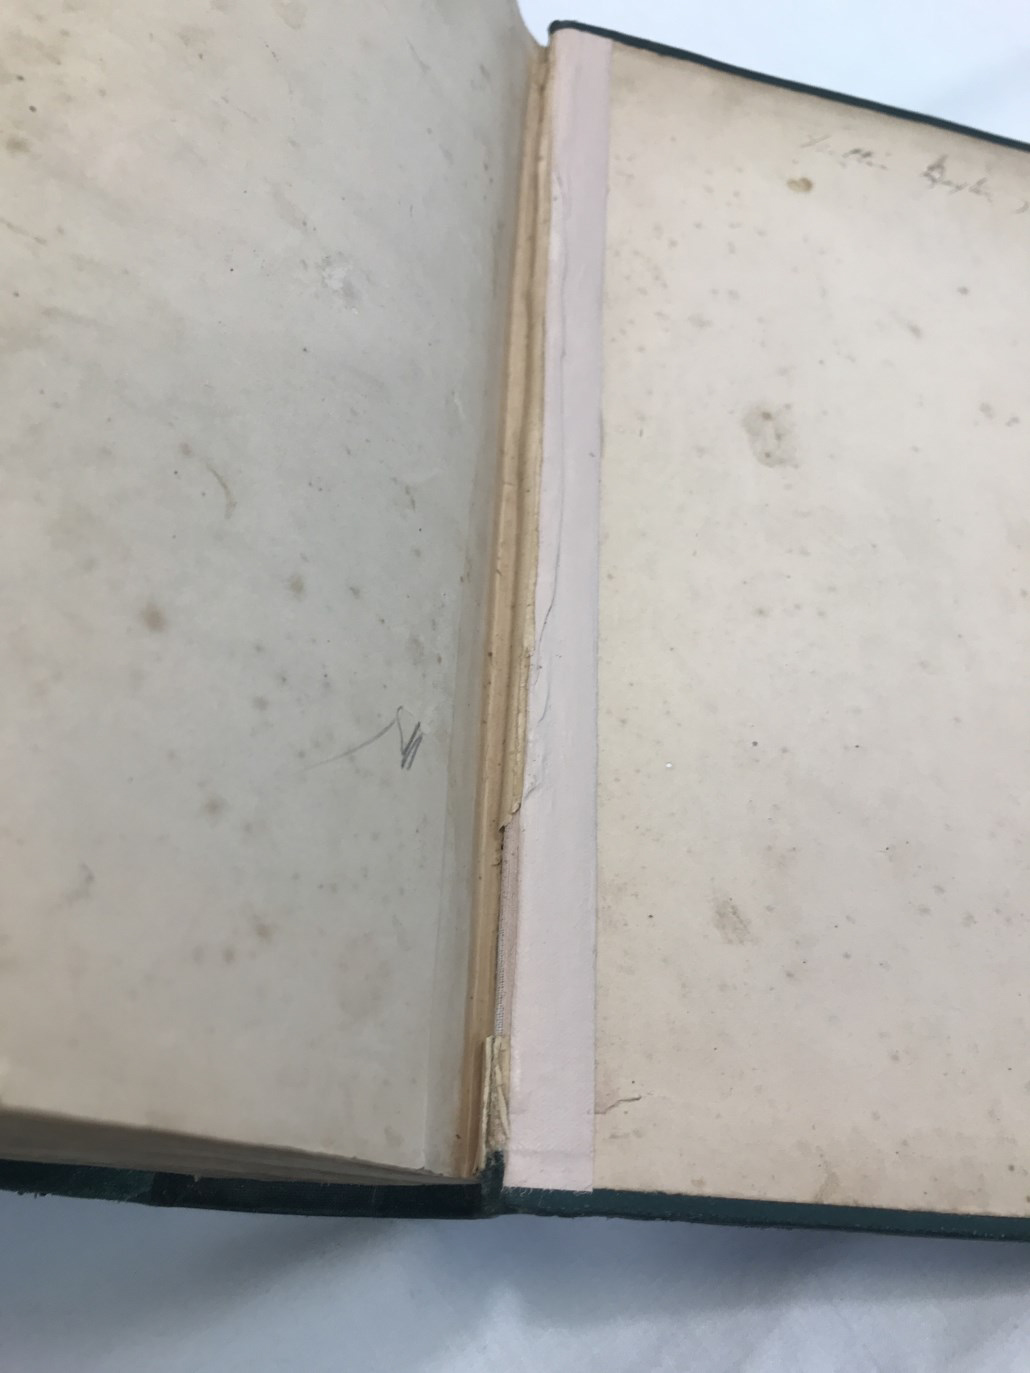 repair needed to hinge of book